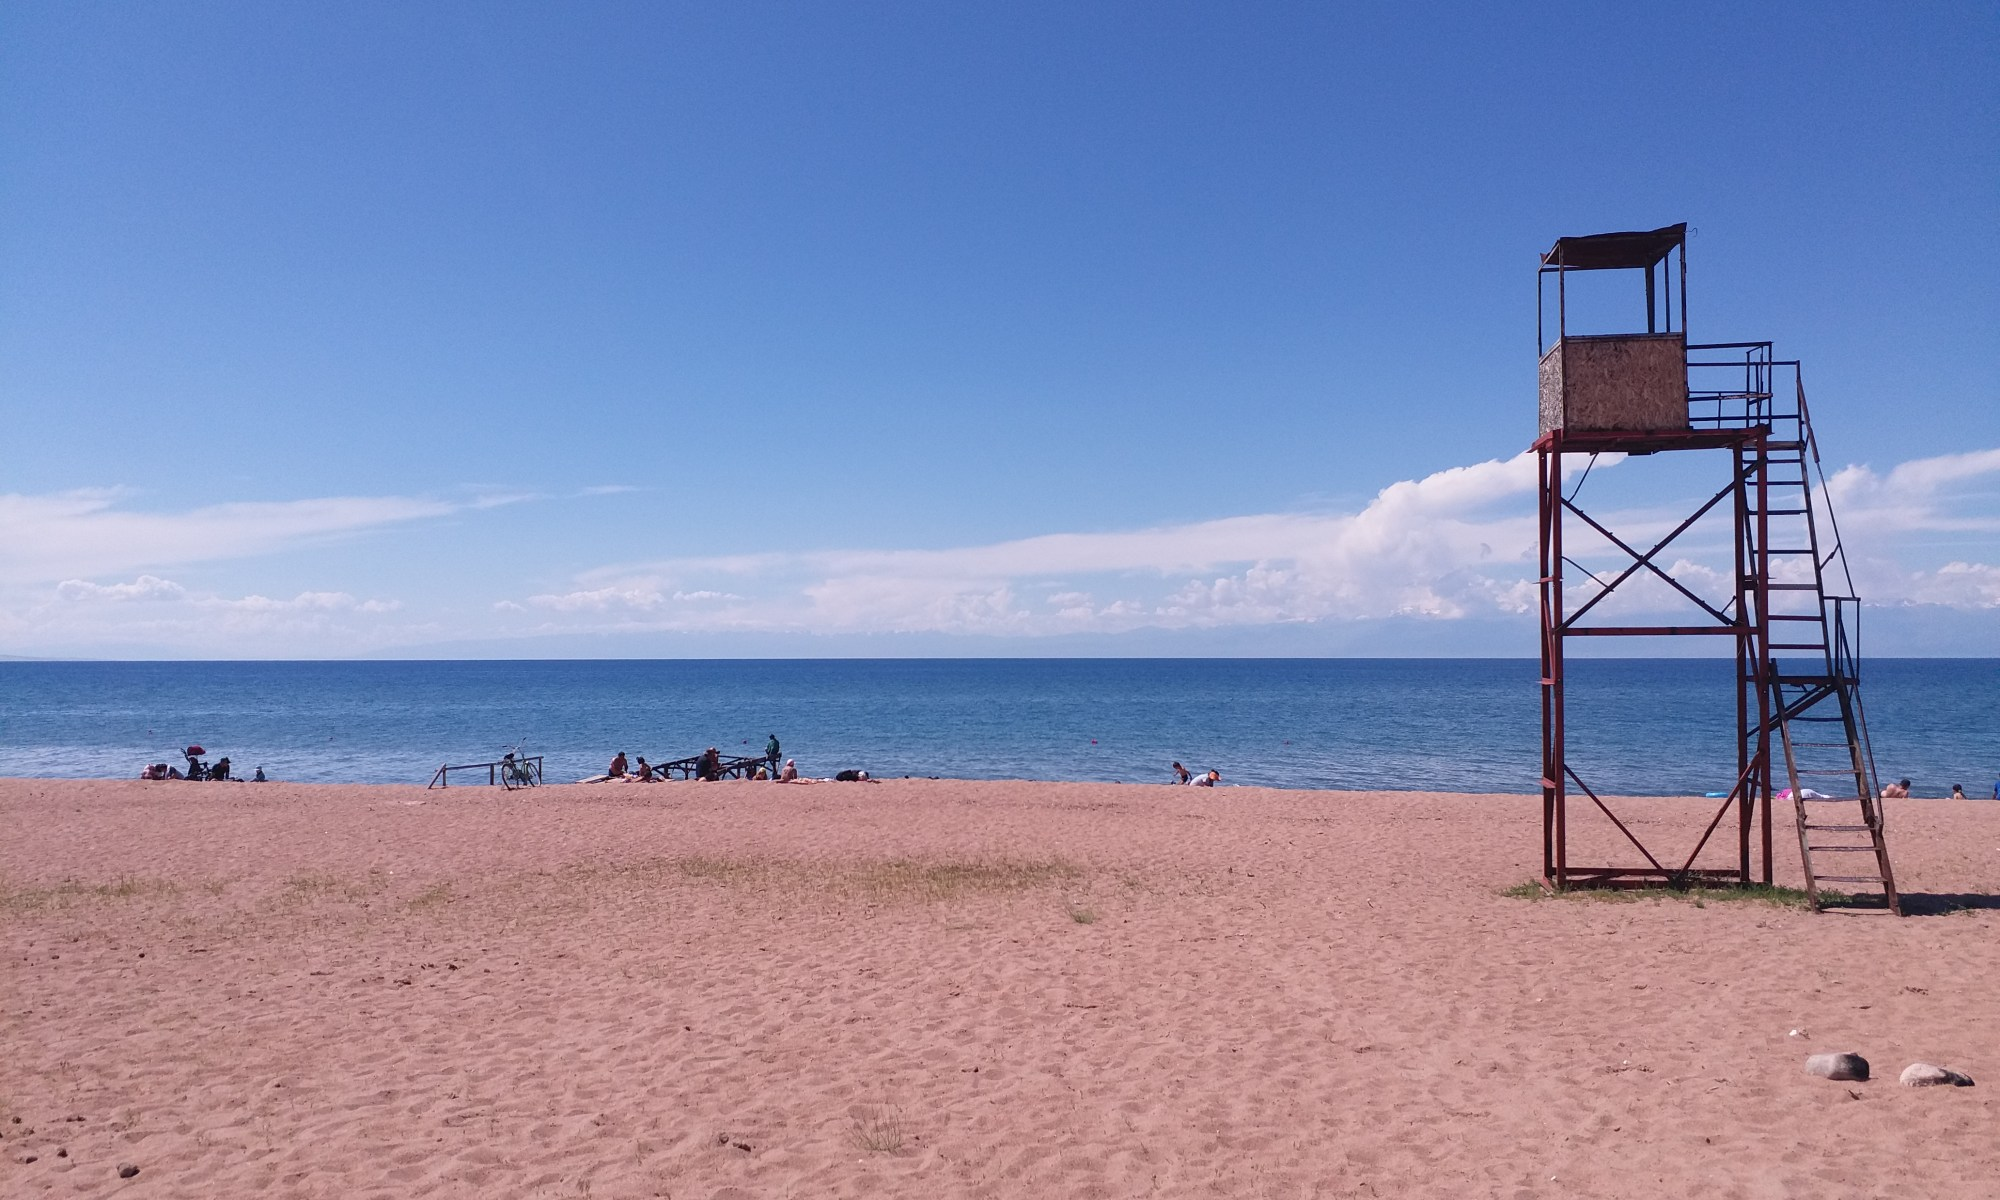 K in Motion Travel Blog. Eastern Kyrgyzstan. Lake Issyk-Kul from Kadji-Sai